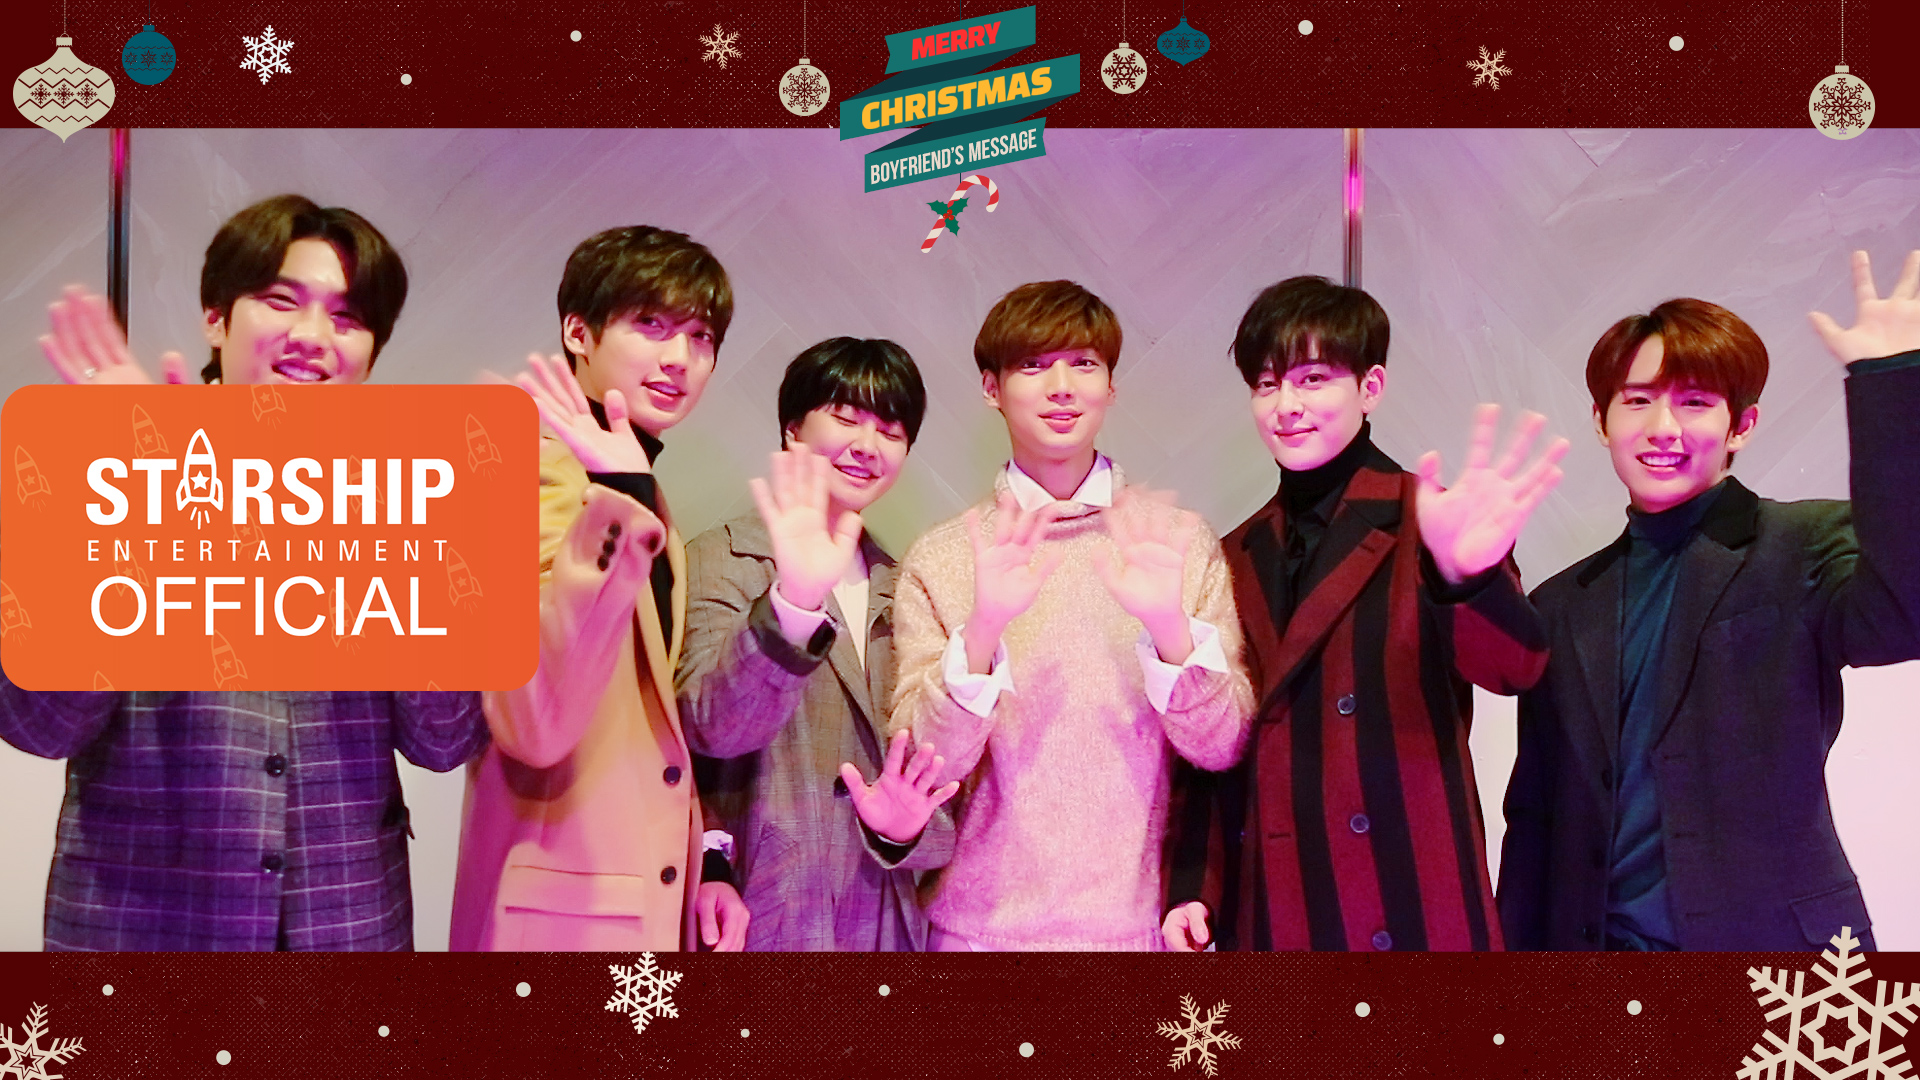 [Special Clip] 보이프렌드(BOYFRIEND) - 2018 Christmas Message